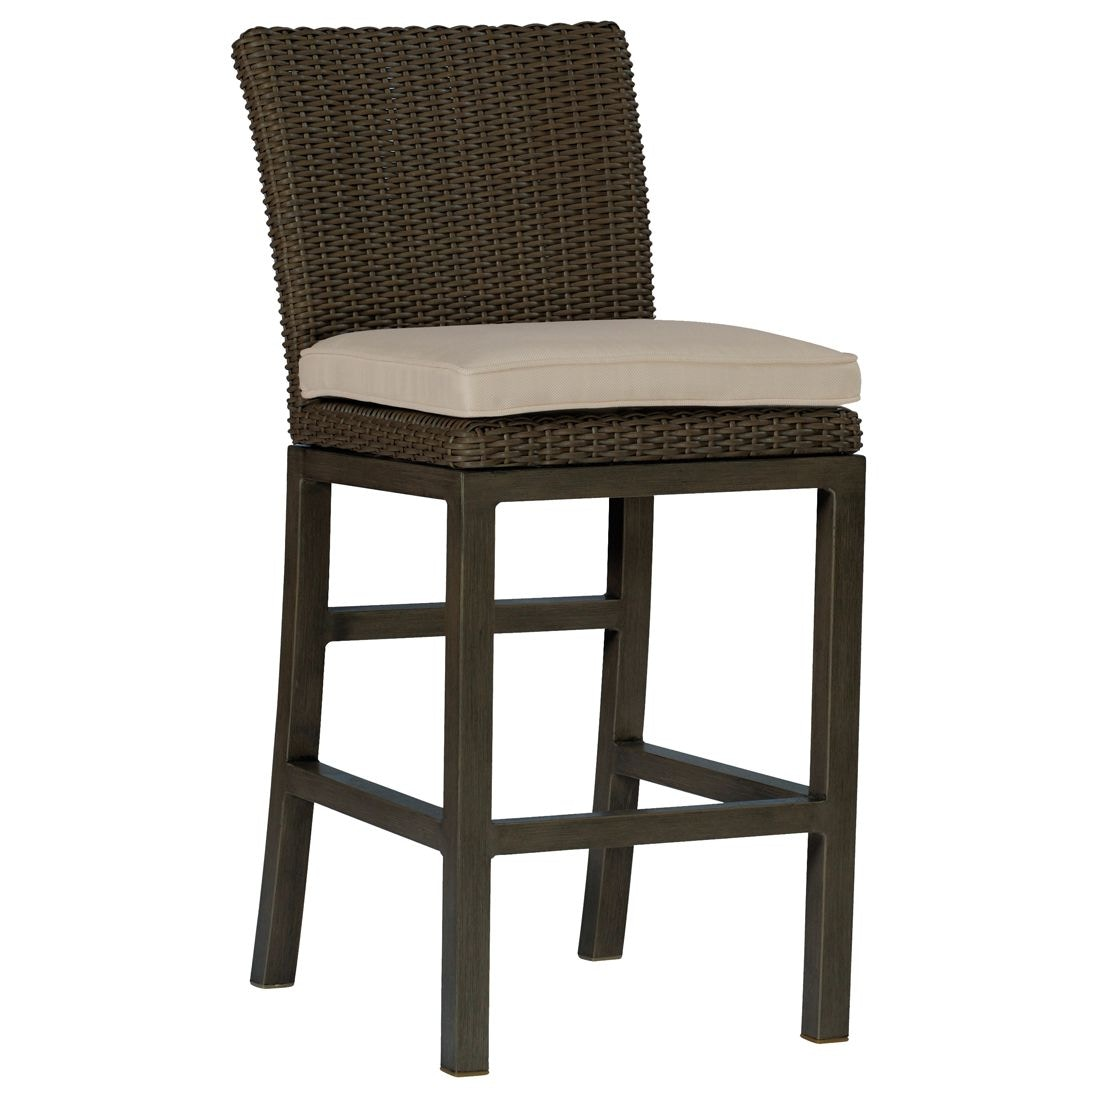 Summer Classics Outdoor Patio Rustic 24 Barstool Zing Casual Living